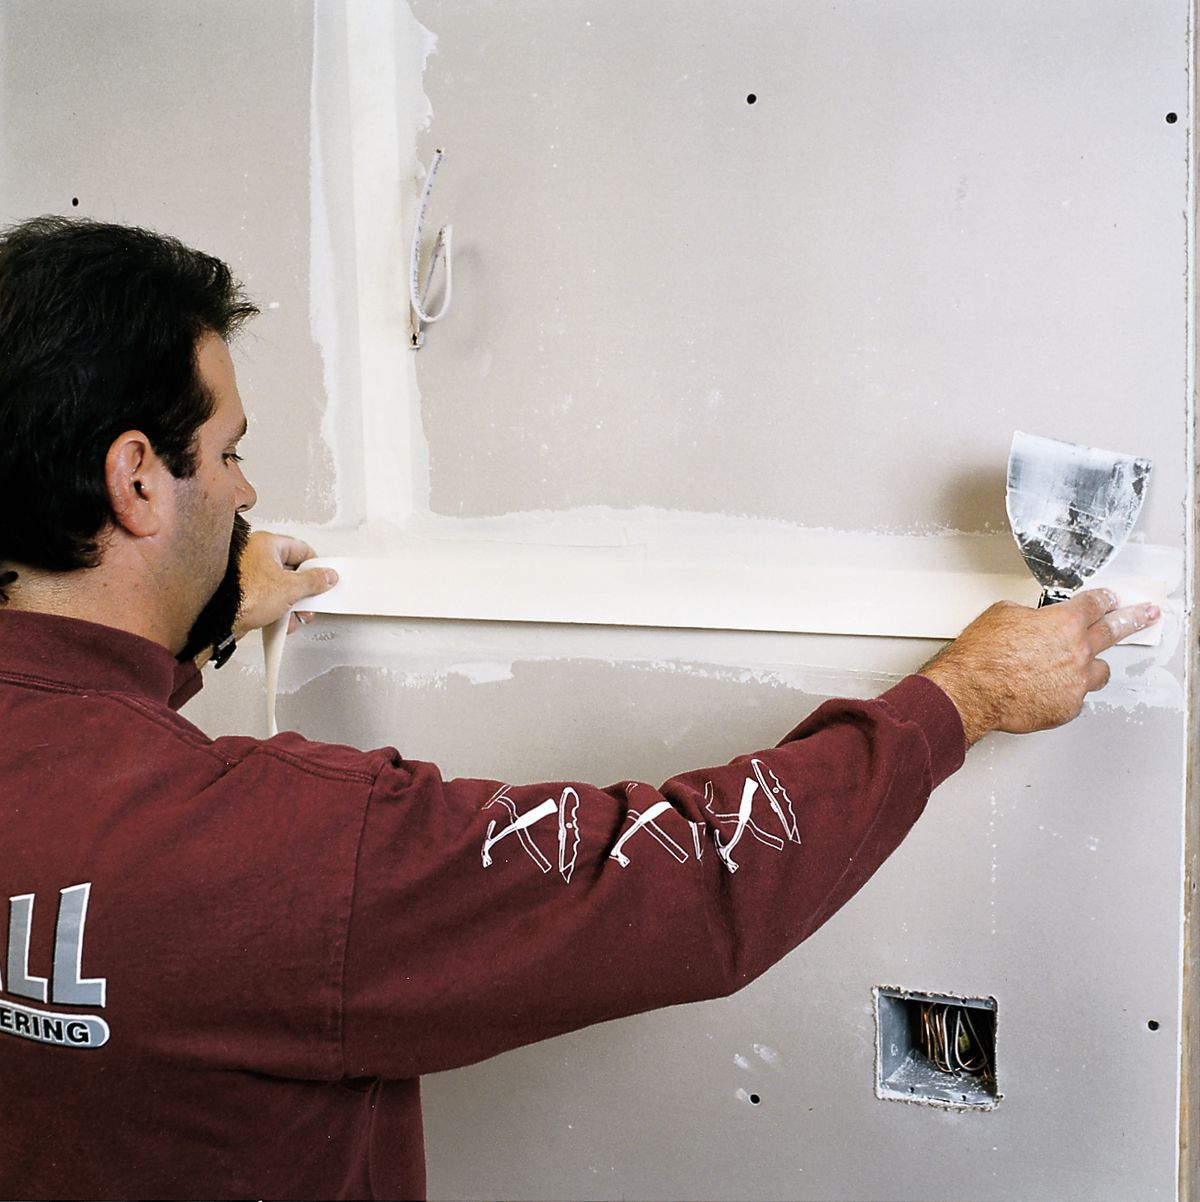 Man Applies Paper Tape To Drywall